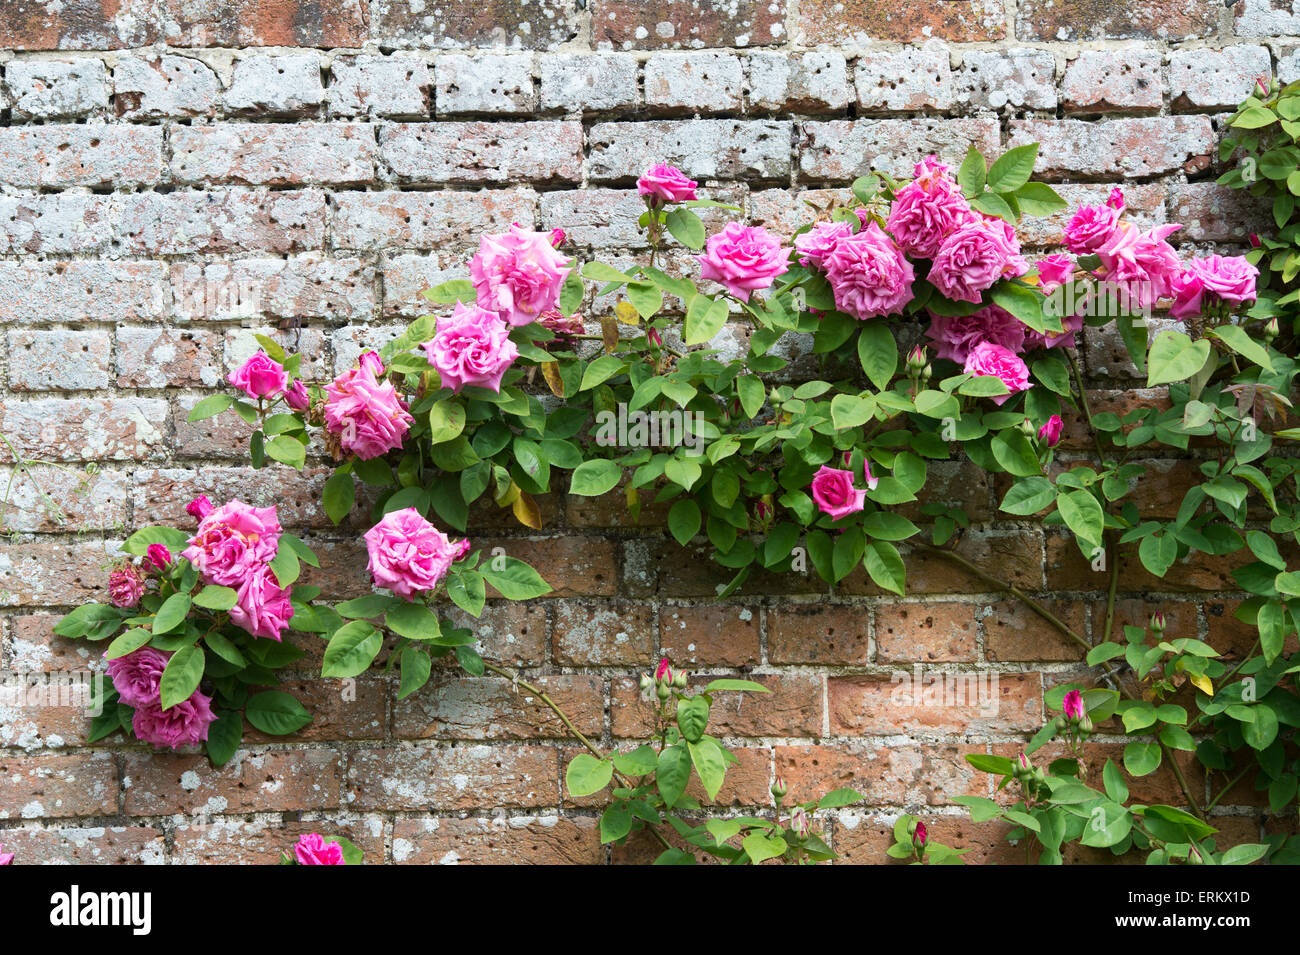 Love Garden Roses: Rosa Zephirine Drouhin. Thornless Rose Climbing Over A